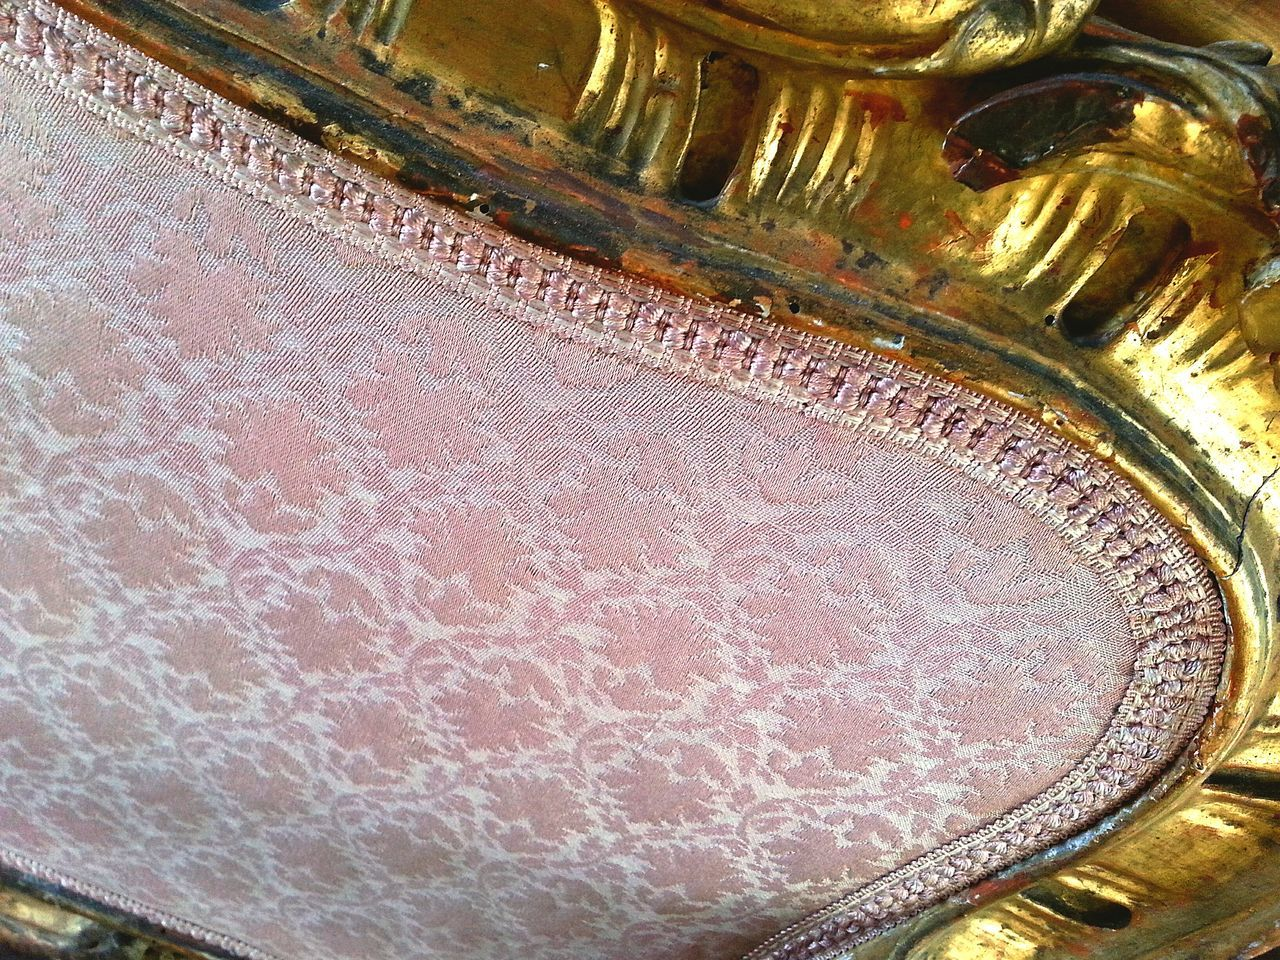 antique couch 🛋 Textured  No People Indoors  Day Close-up Antique Couch Ornaments Old-fashioned Gold Pattern, Texture, Shape And Form Pattern Gold Colored Brocade Rosé Pink Leaf Gold Antiques 17th Century 16th Century Furnitures Furniture Photography Eyeem Furniture